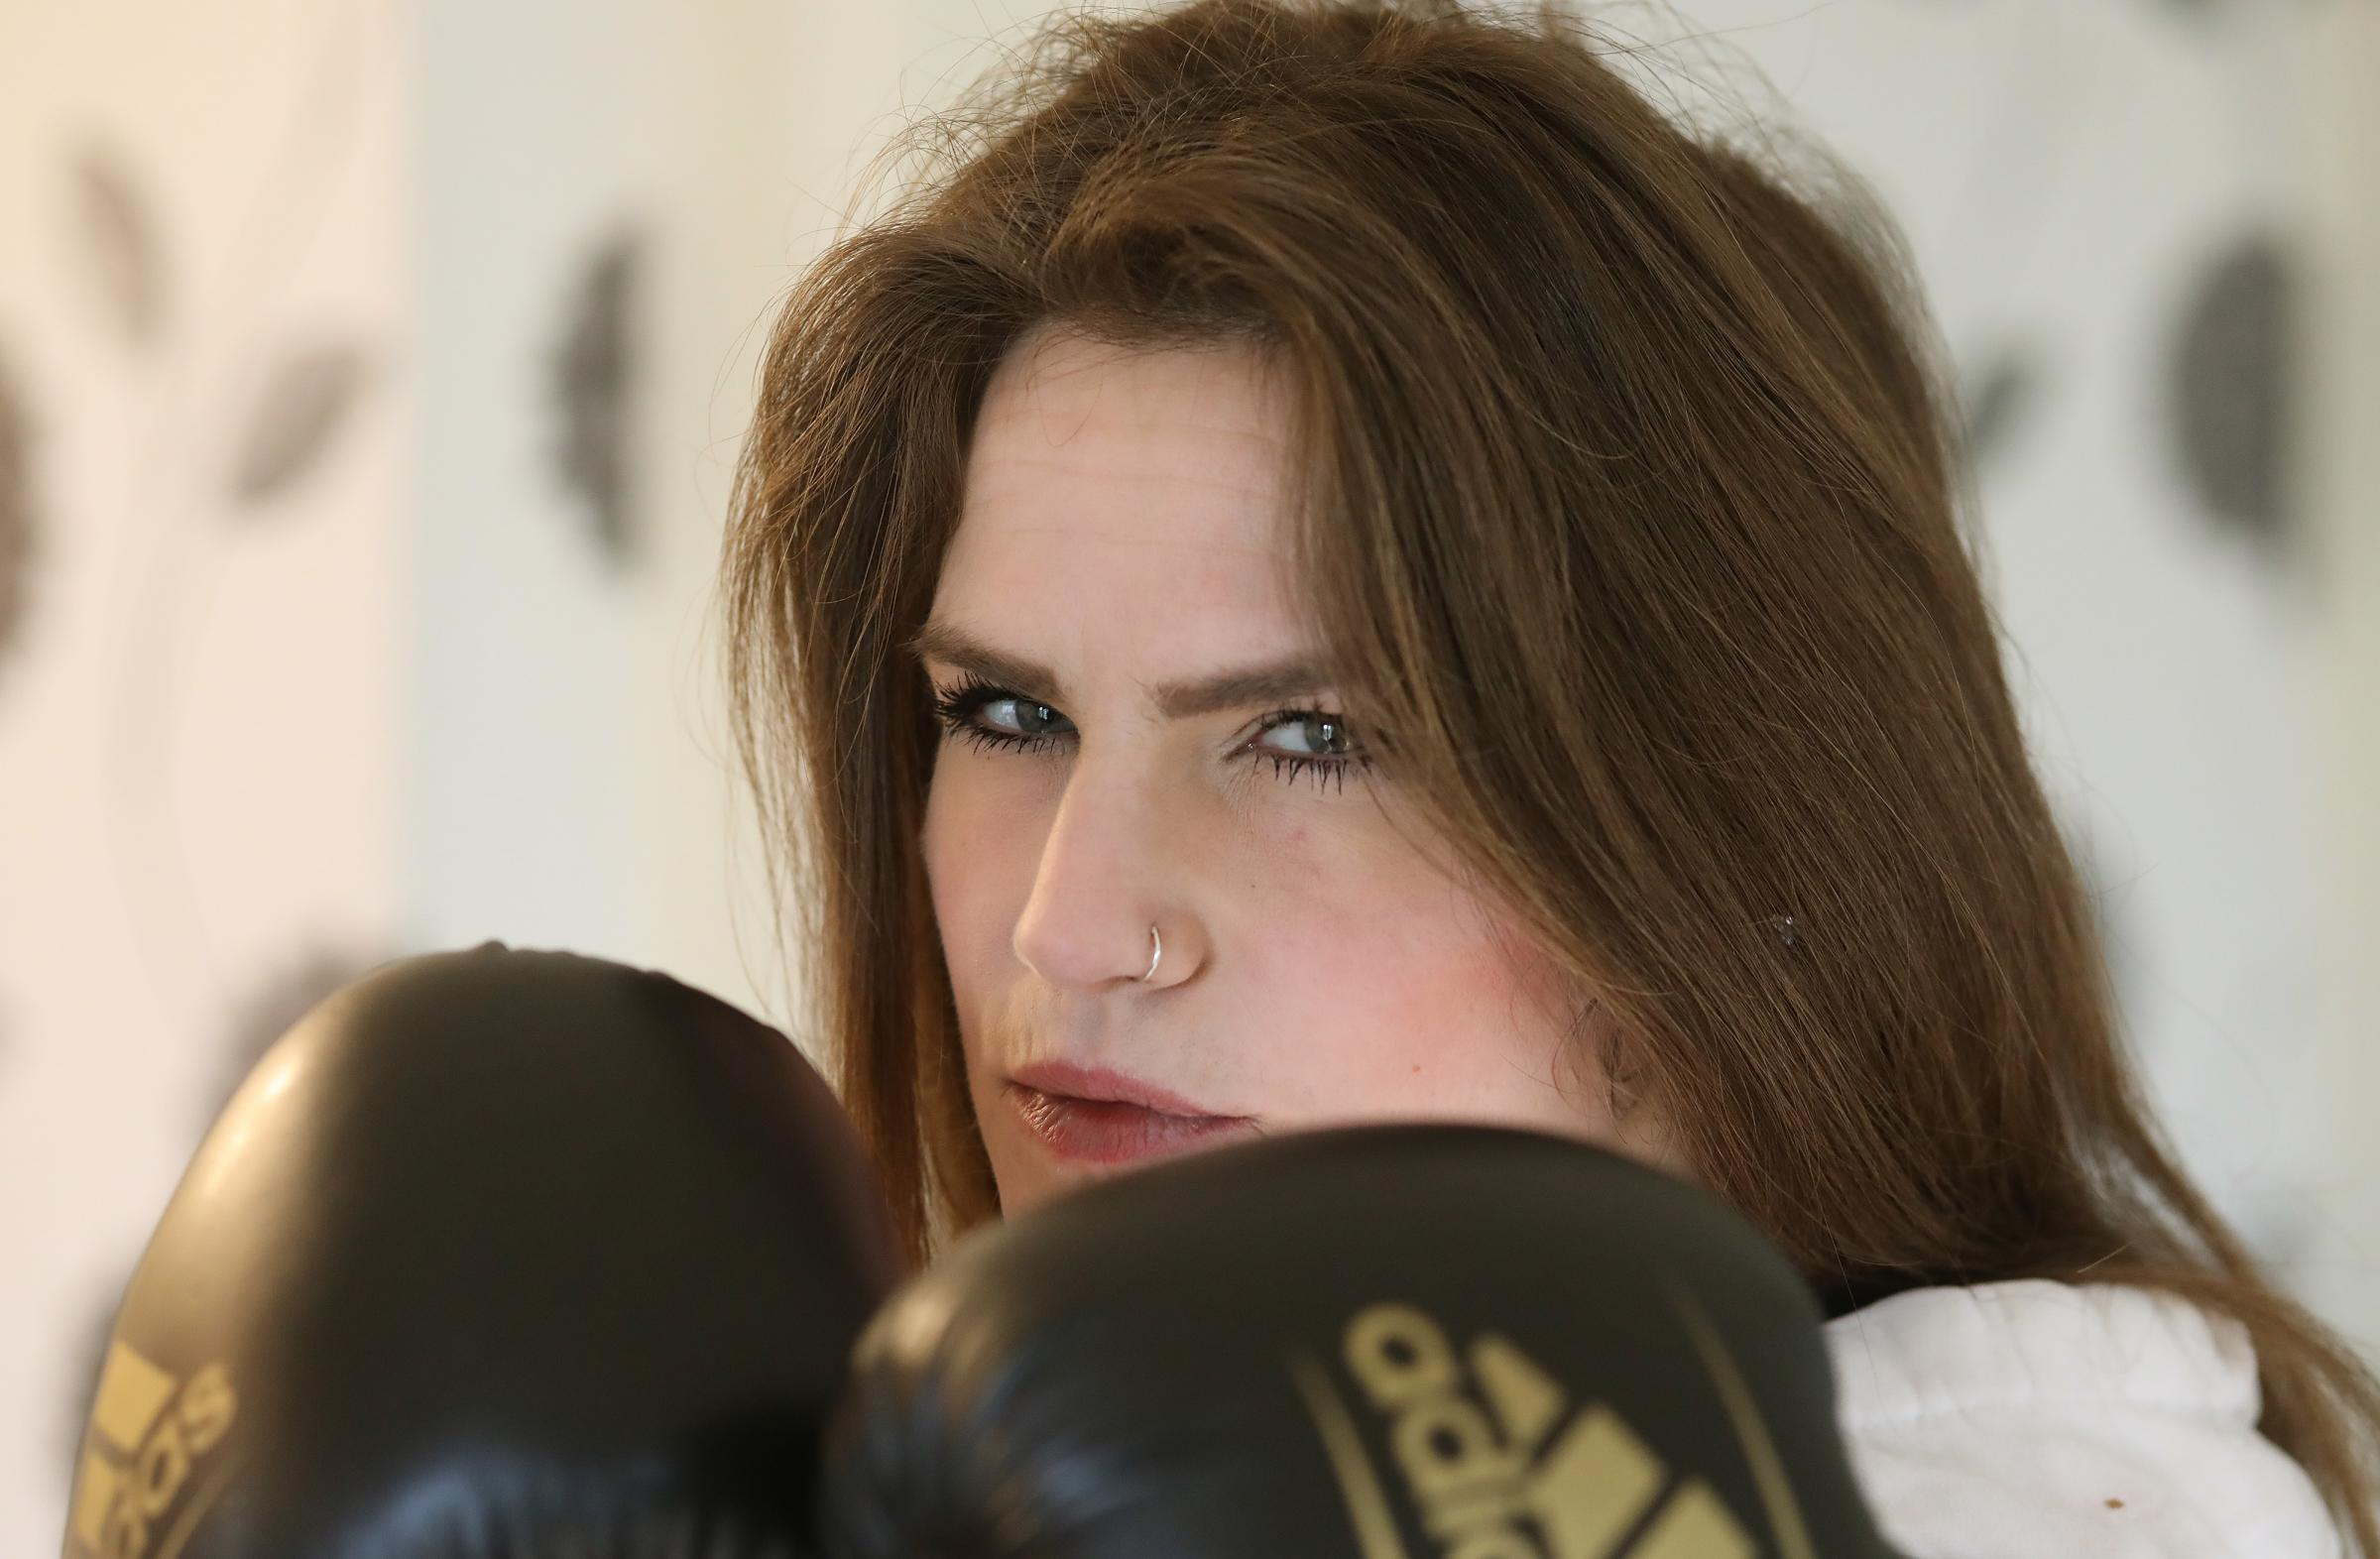 Natassja Guinsberg (corr) from Mistley, getting ready to box for charity.